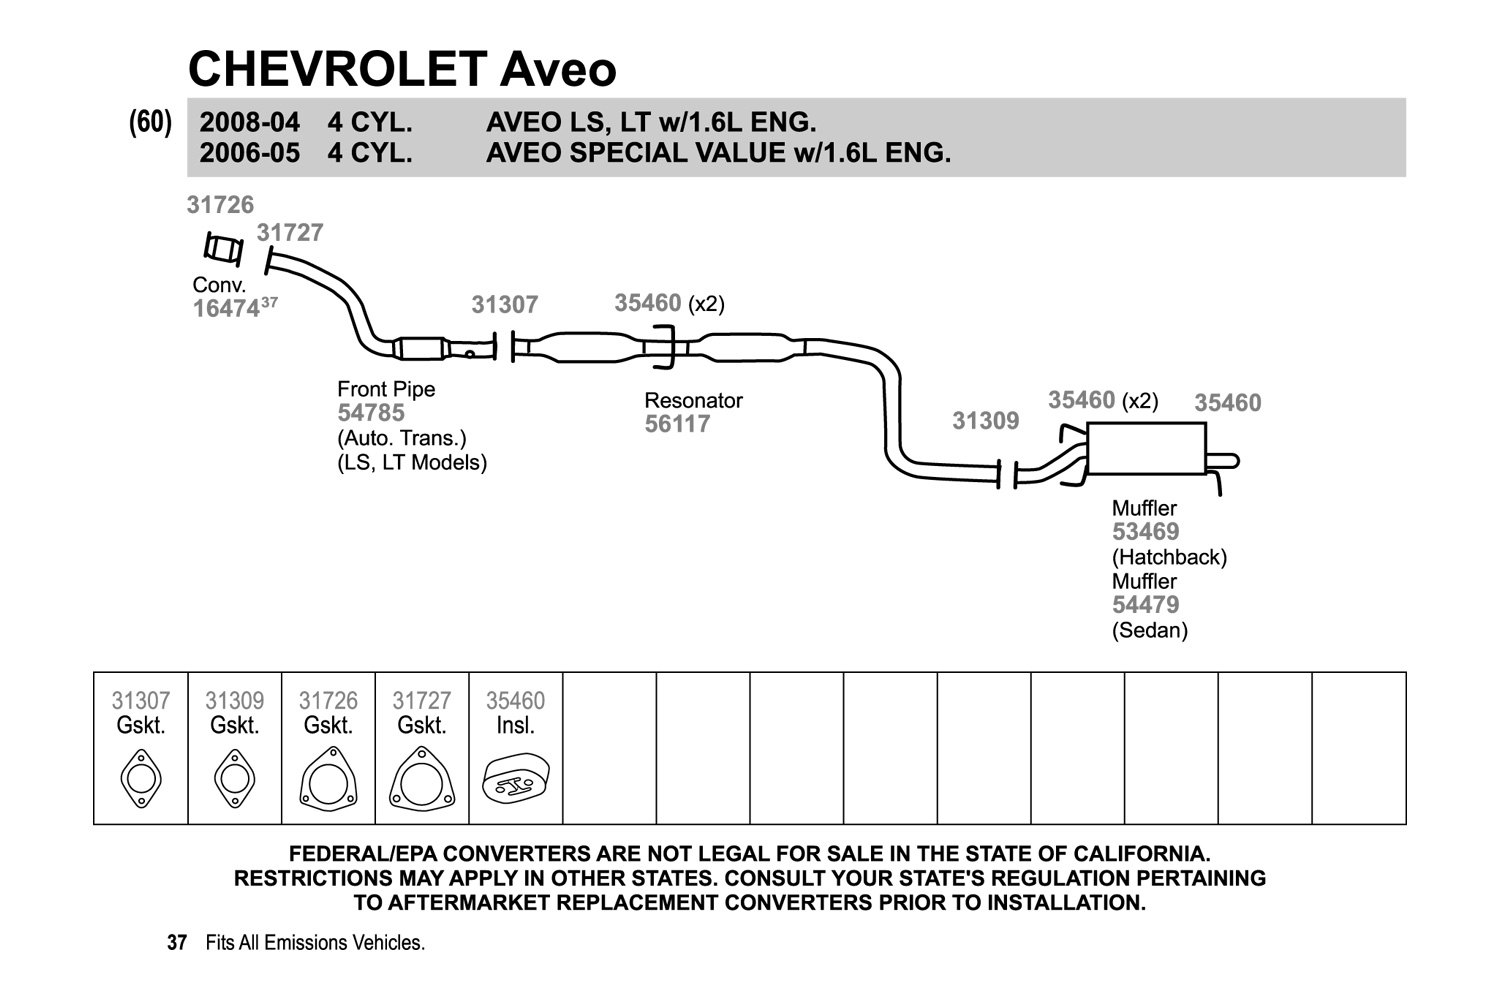 2005 chevy aveo ignition wiring diagram 04 chevy aveo exhaust wiring diagram